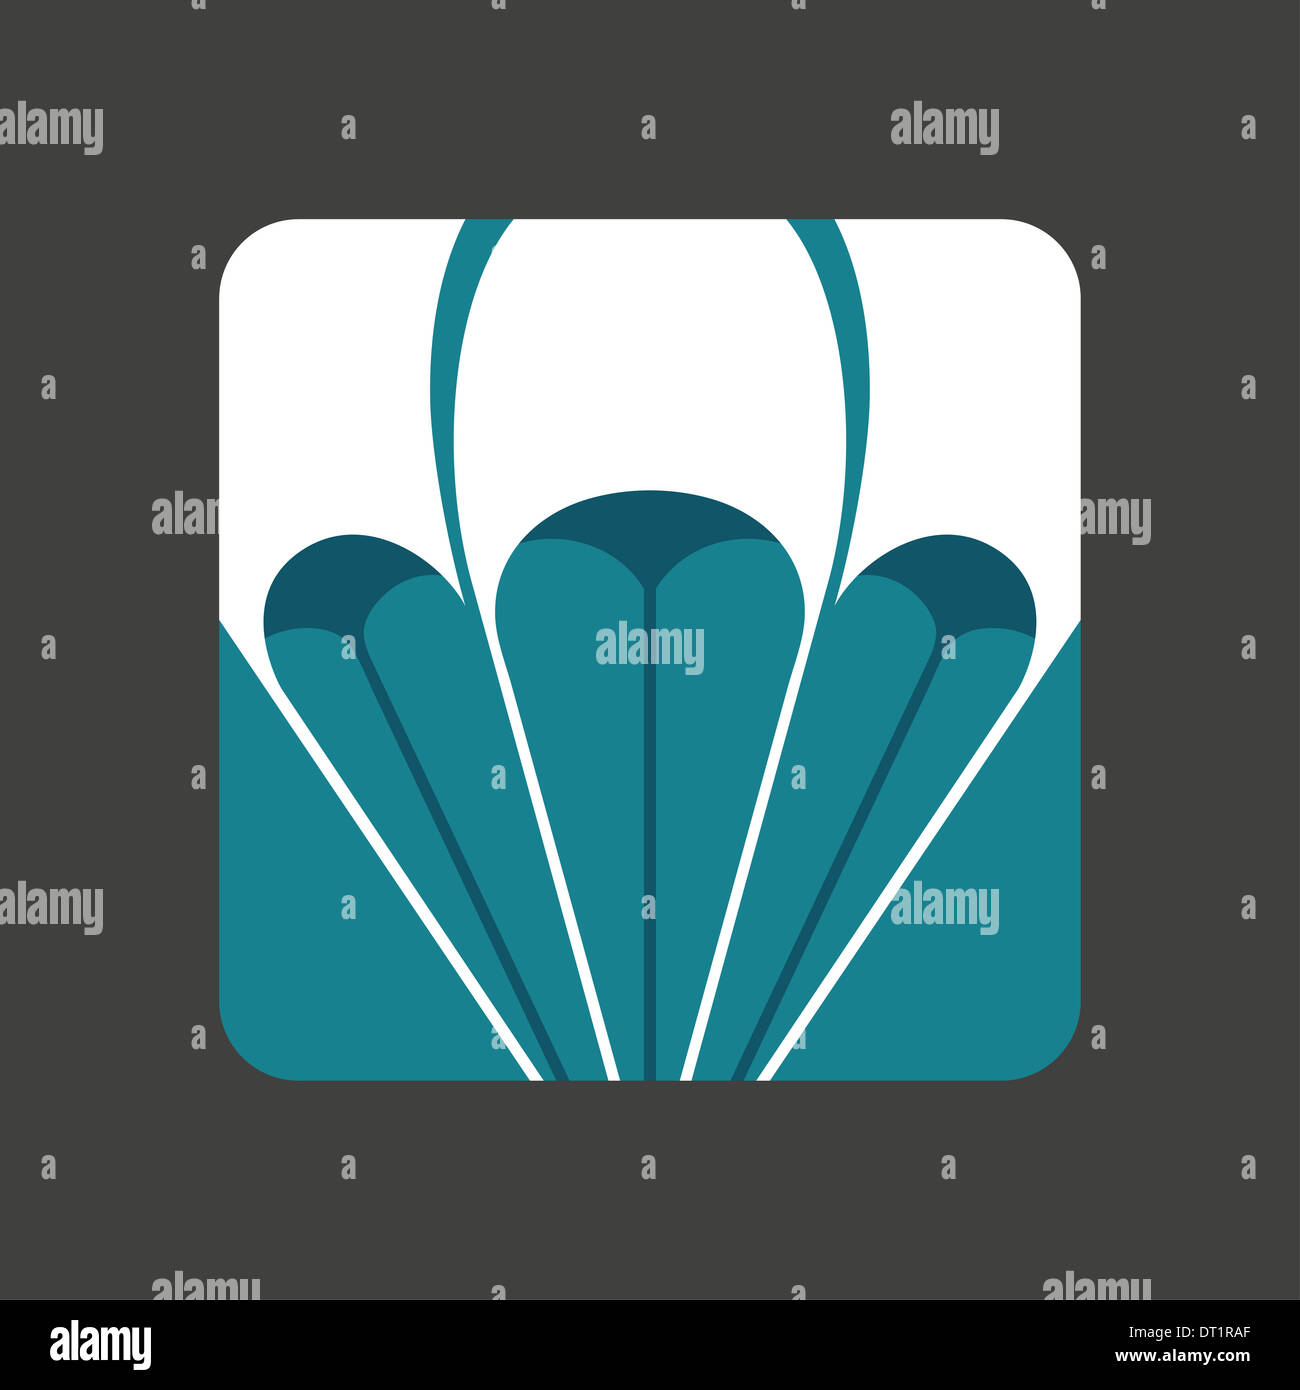 Flat icon with a open parachute - Stock Image